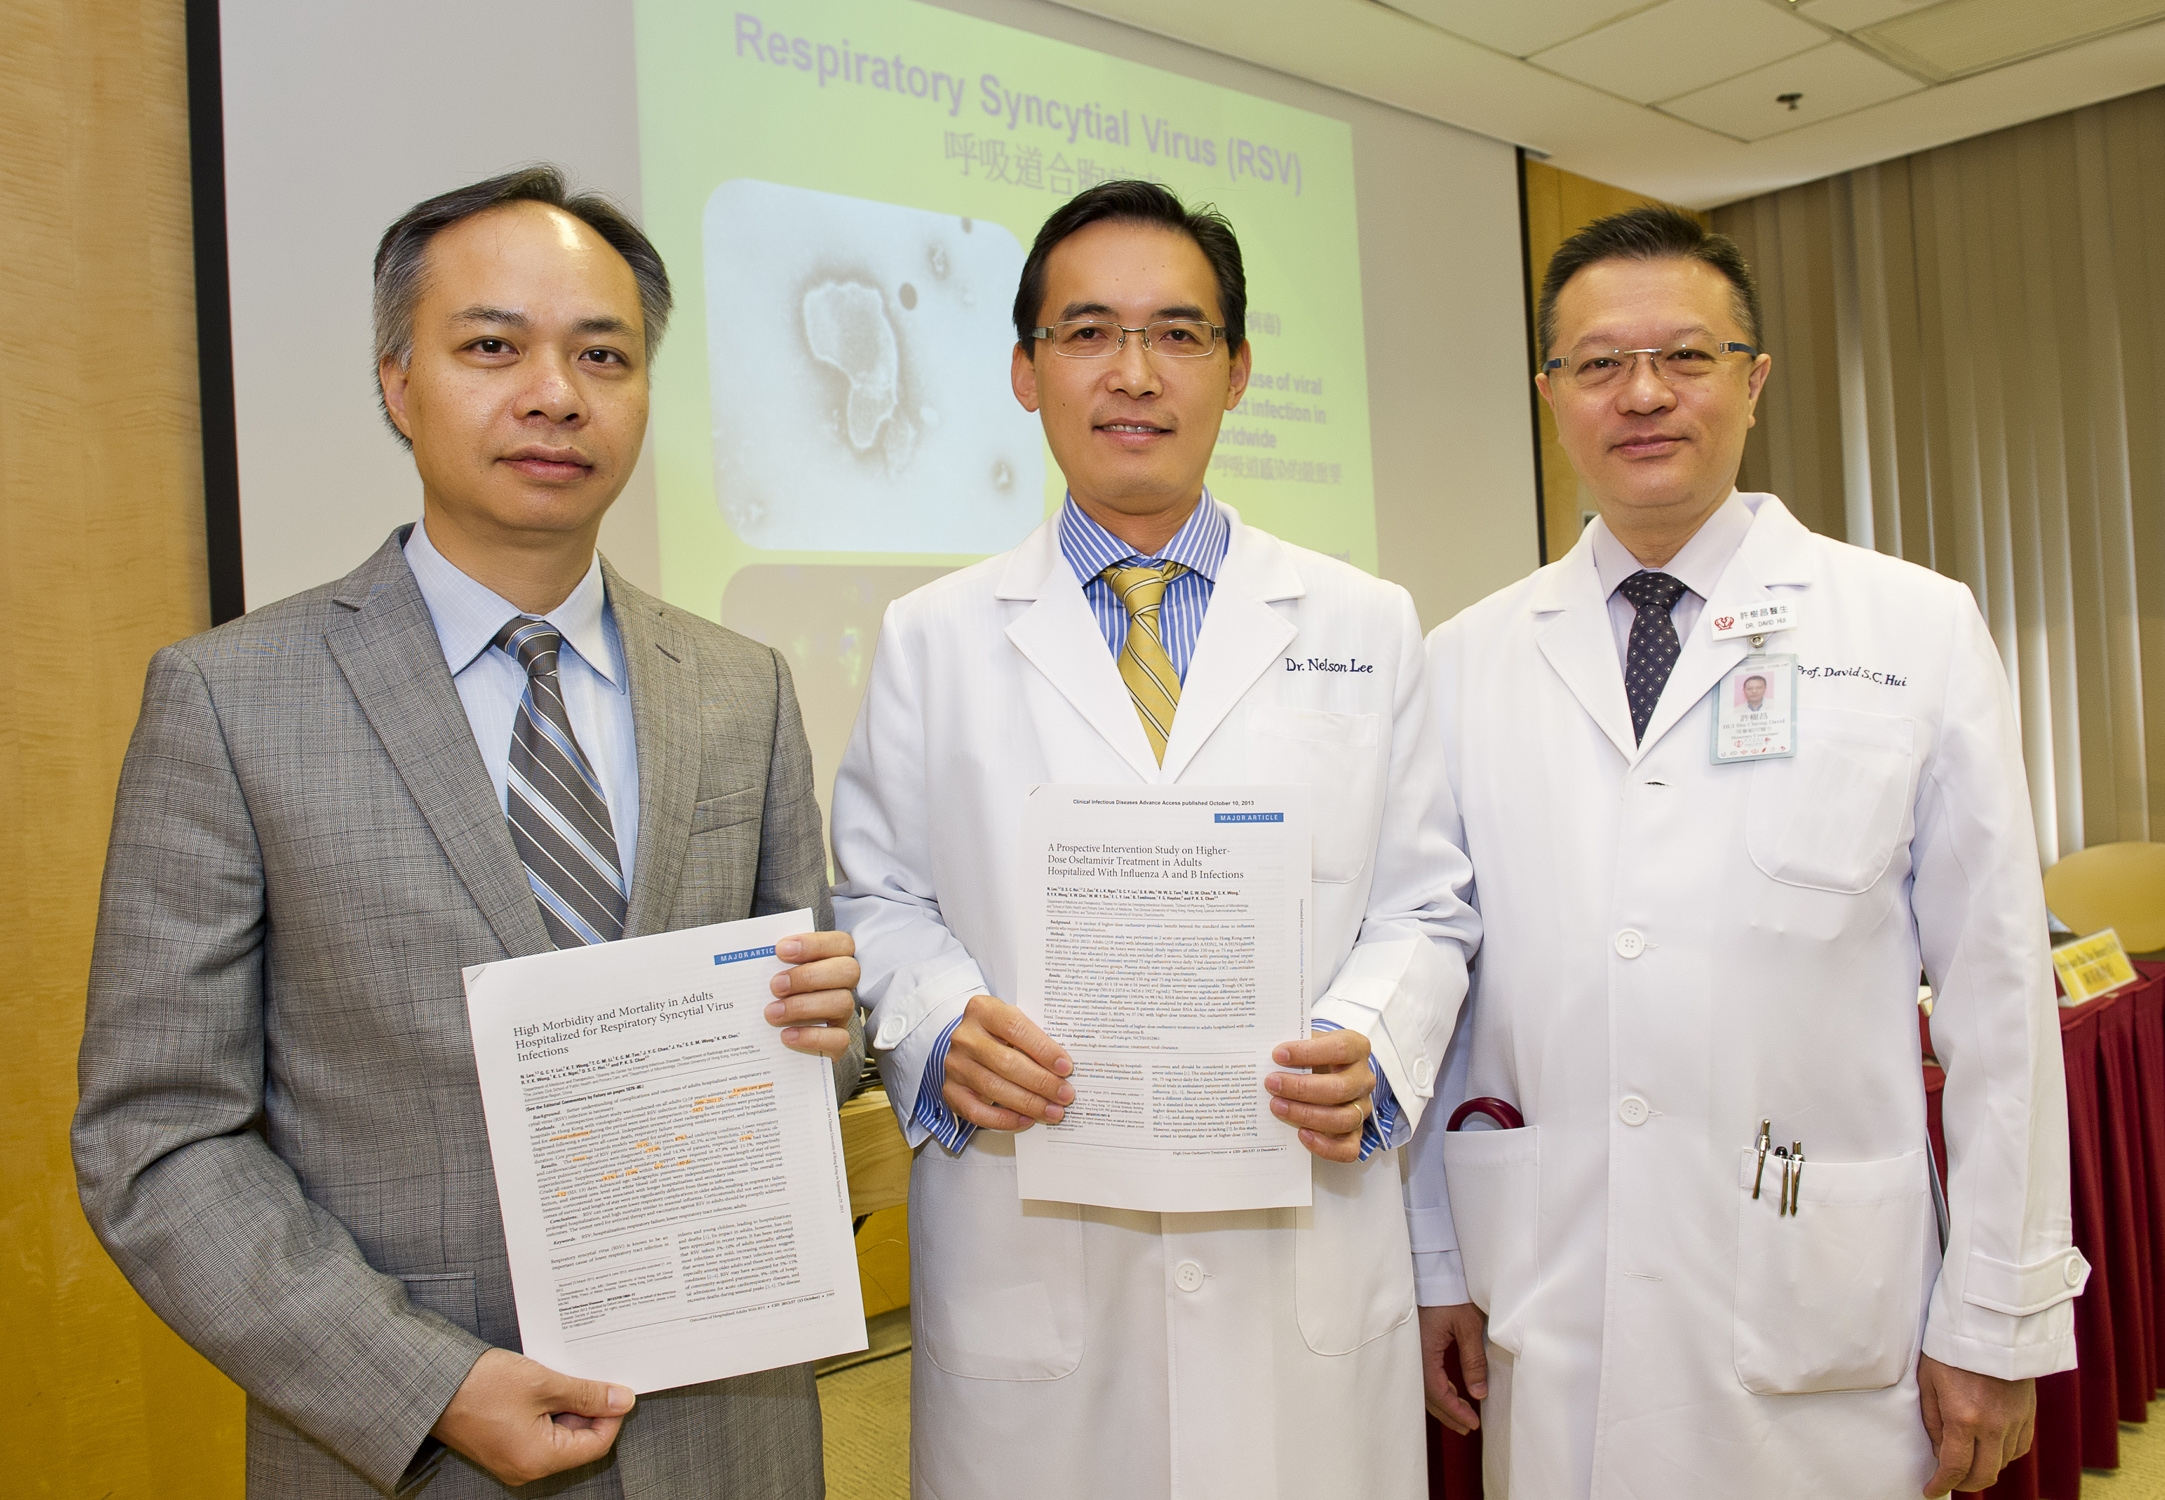 (From left) Prof. Paul K.S. CHAN, Chairman, Department of Microbiology; Prof. Nelson L.S. LEE, Head of Division of Infectious Diseases, Department of Medicine & Therapeutics; and Prof. David S.C. HUI, Stanley Ho Professor of Respiratory Medicine, Department of Medicine and Therapeutics at CUHK present their two recent research studies which reveal infections caused by RSV and influenza among Hong Kong adults and elderly could be life-threatening.